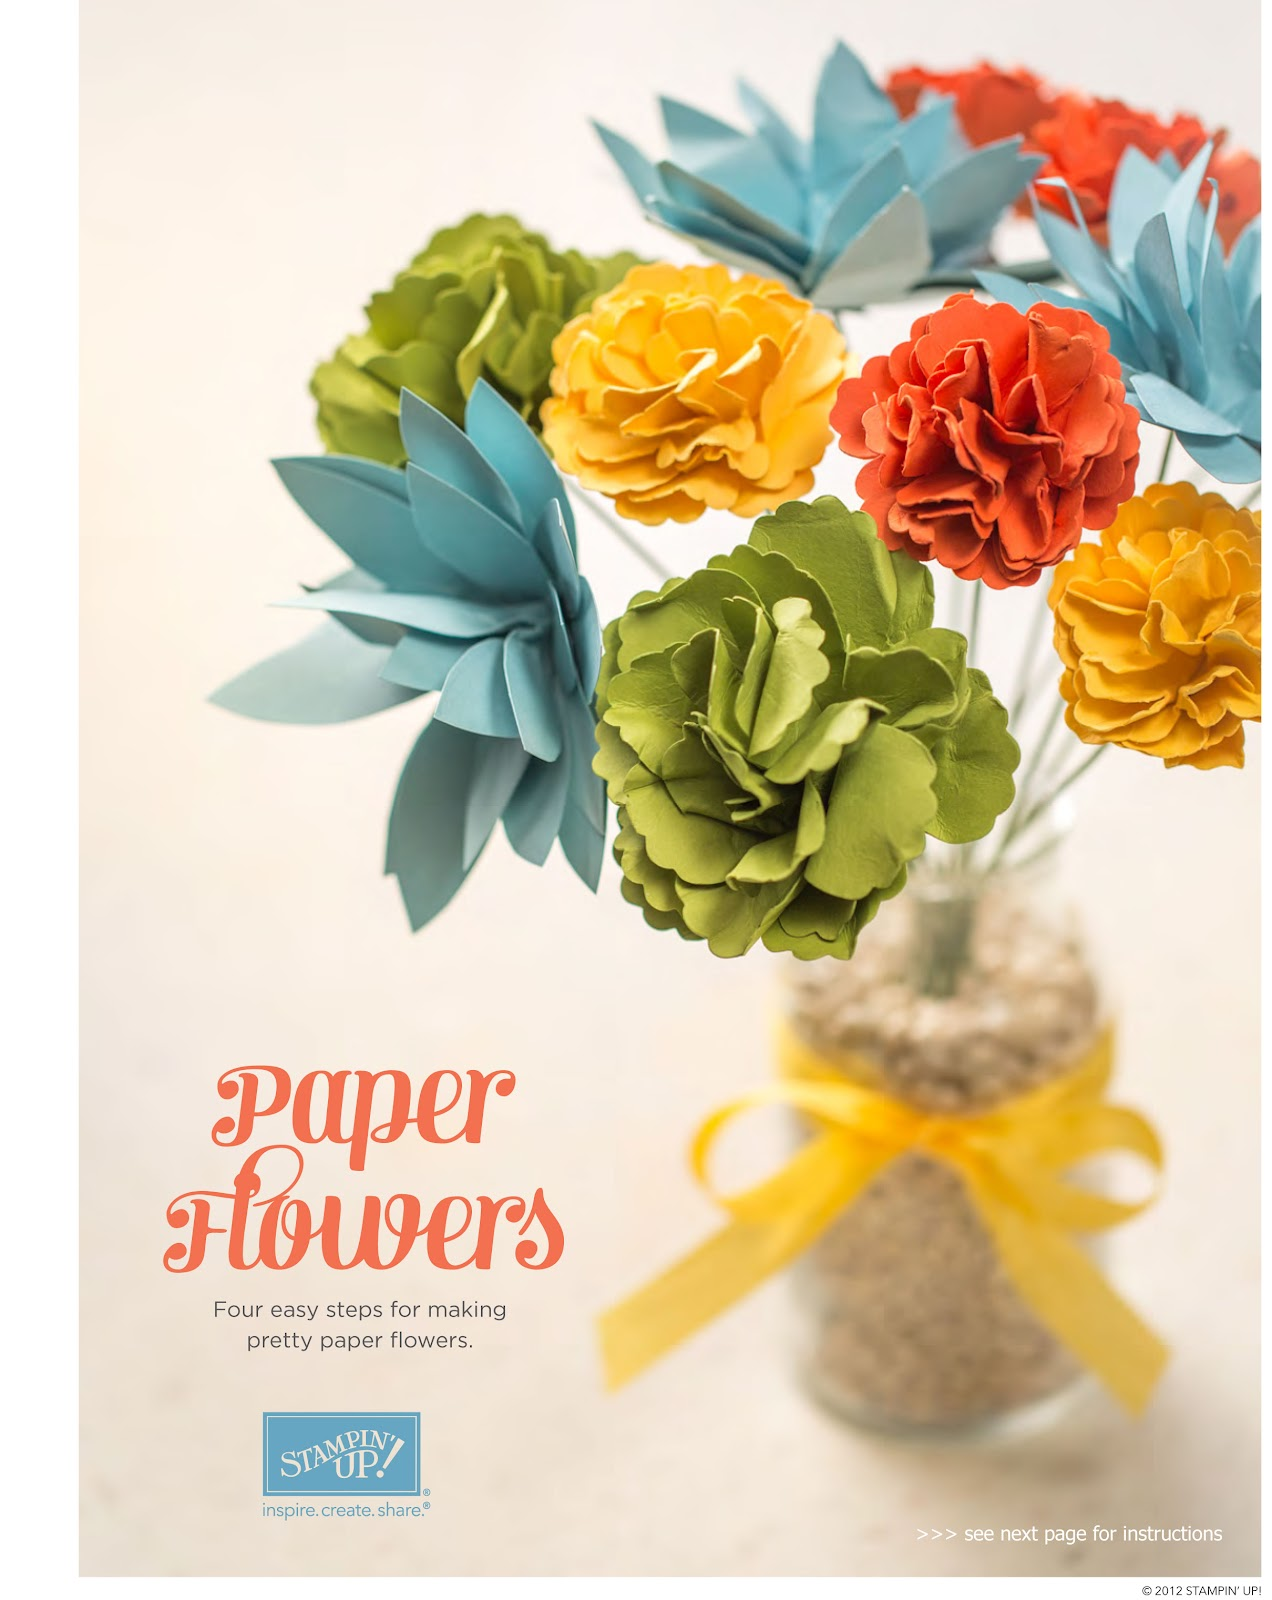 Stamp a blessing stampin up paper flowers tutorial you might also like mightylinksfo Choice Image